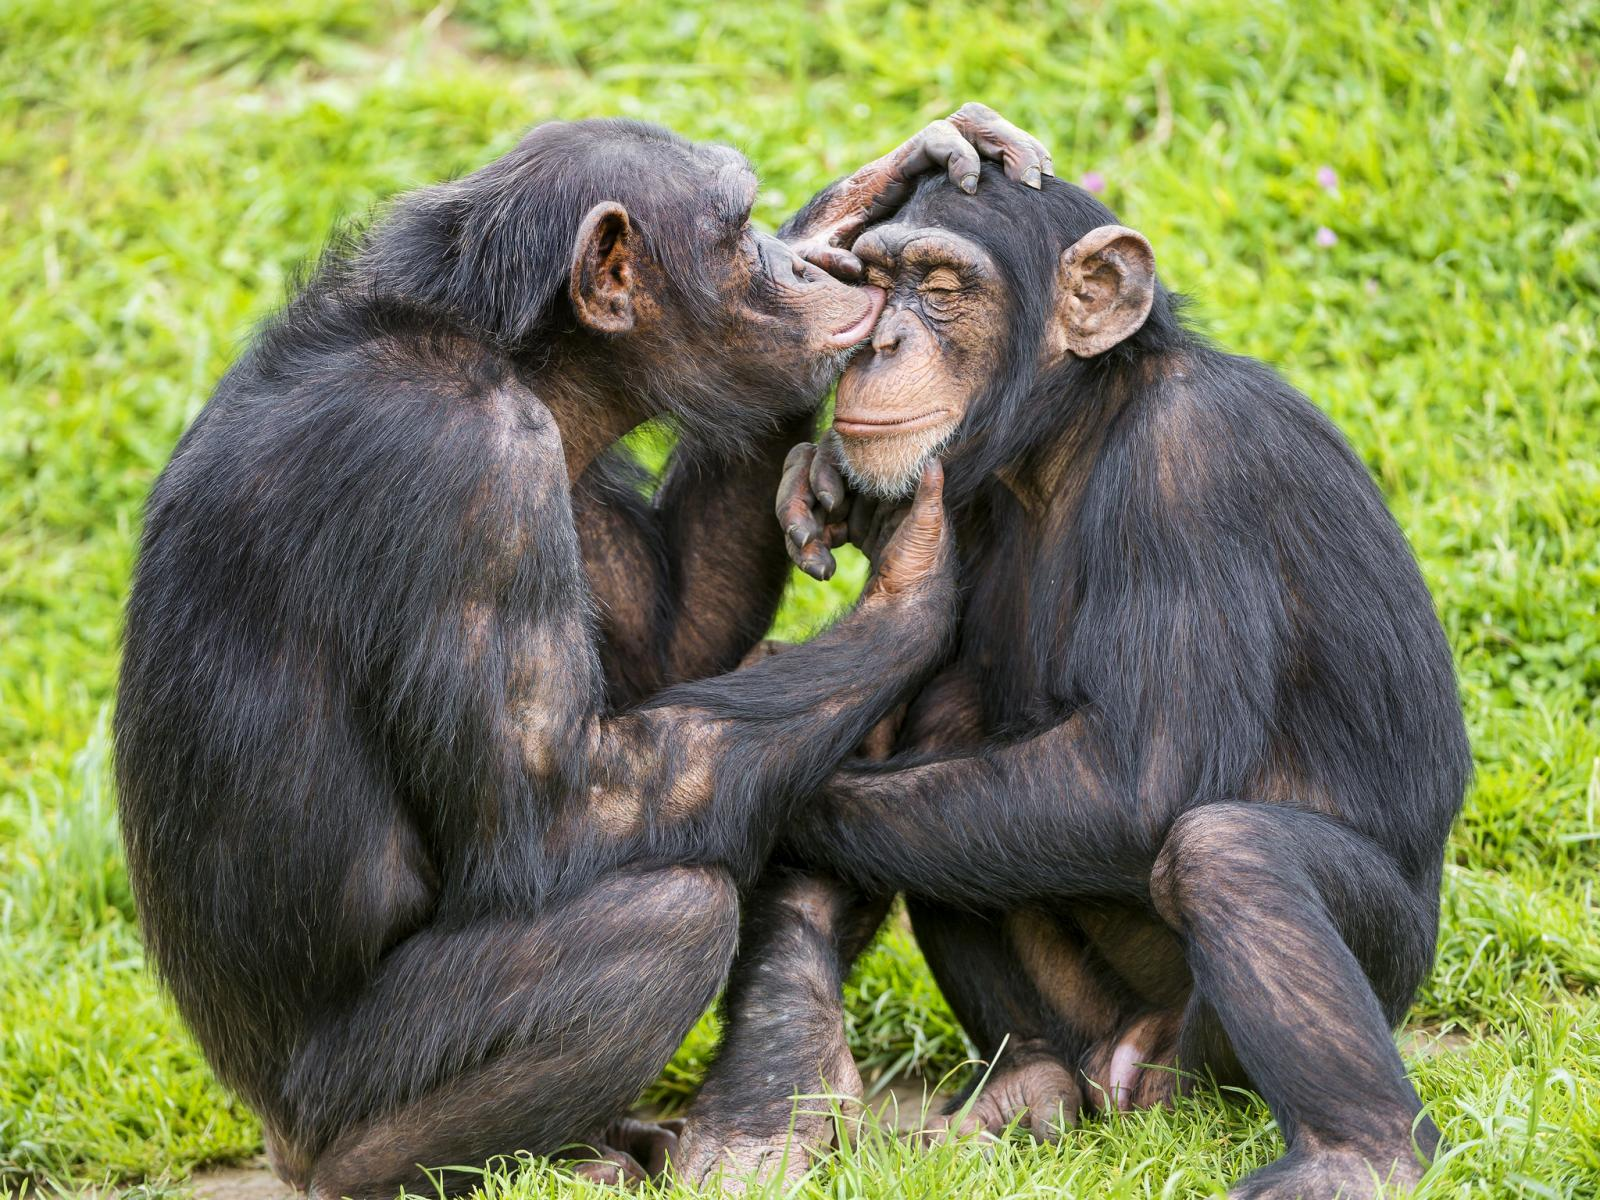 Young chimps taking care of each other (2019) by Tambako the Jaguar (Flickr | CC BY.ND 2.0